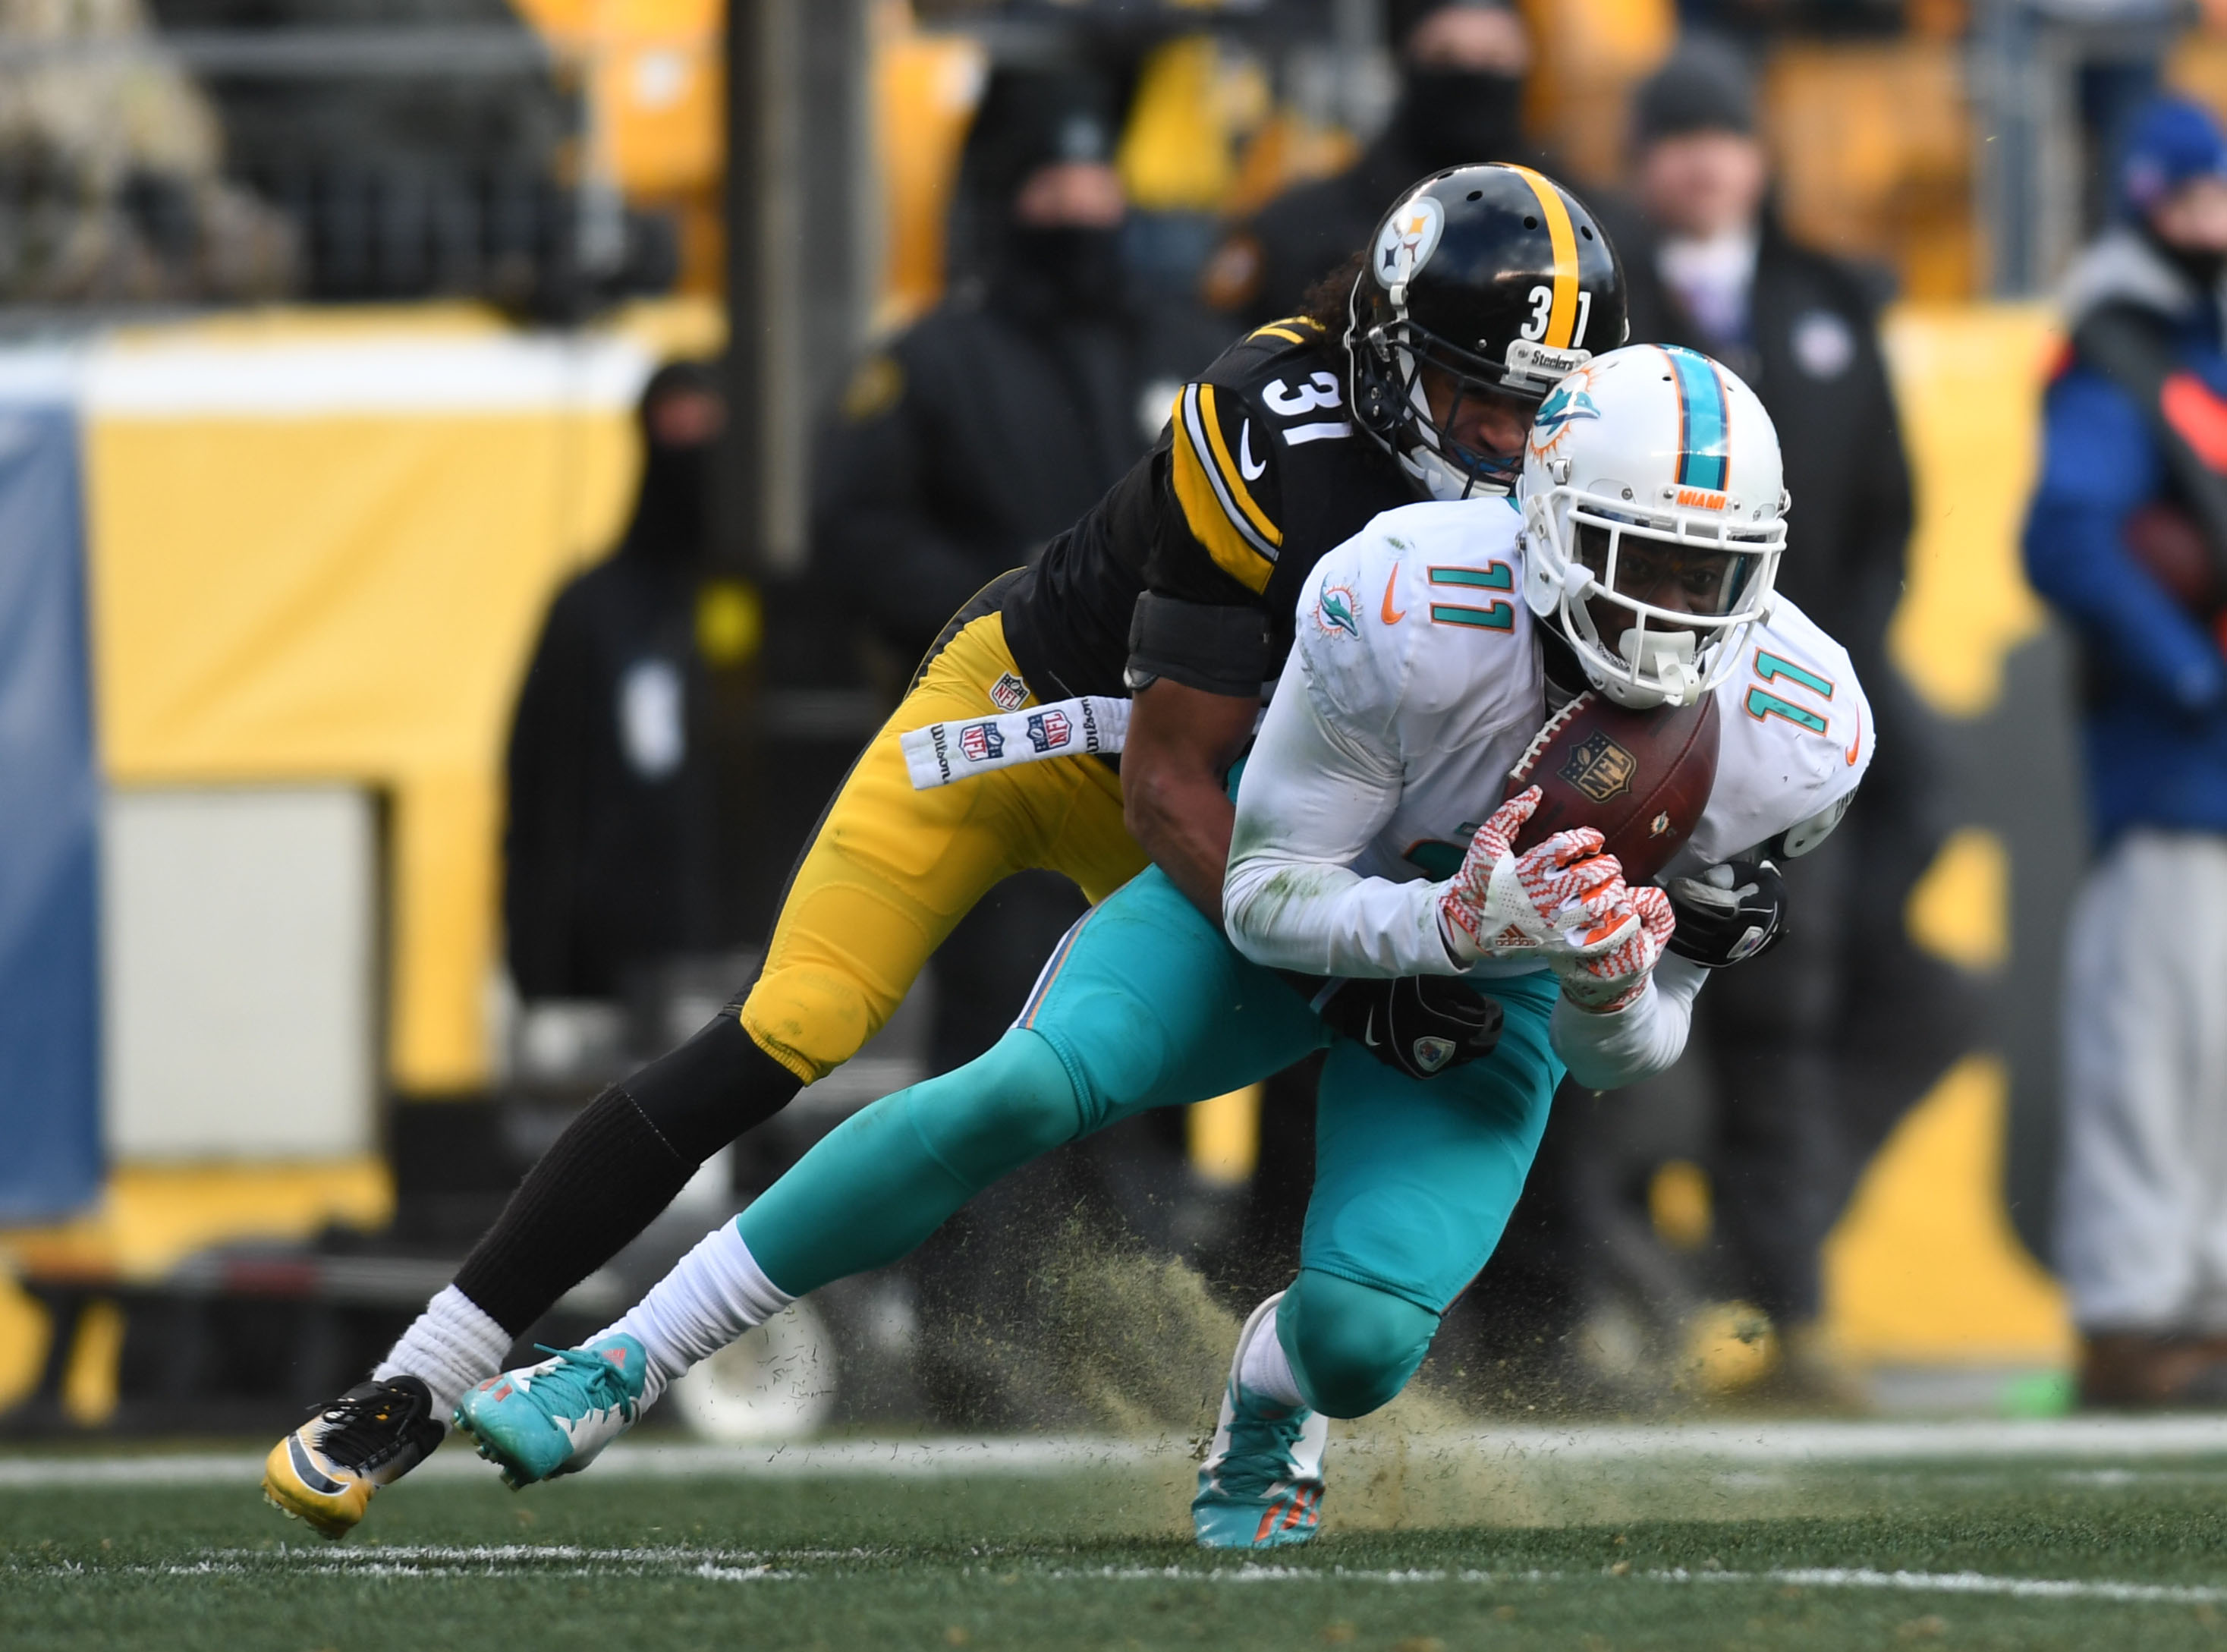 9797370-nfl-afc-wild-card-miami-dolphins-at-pittsburgh-steelers